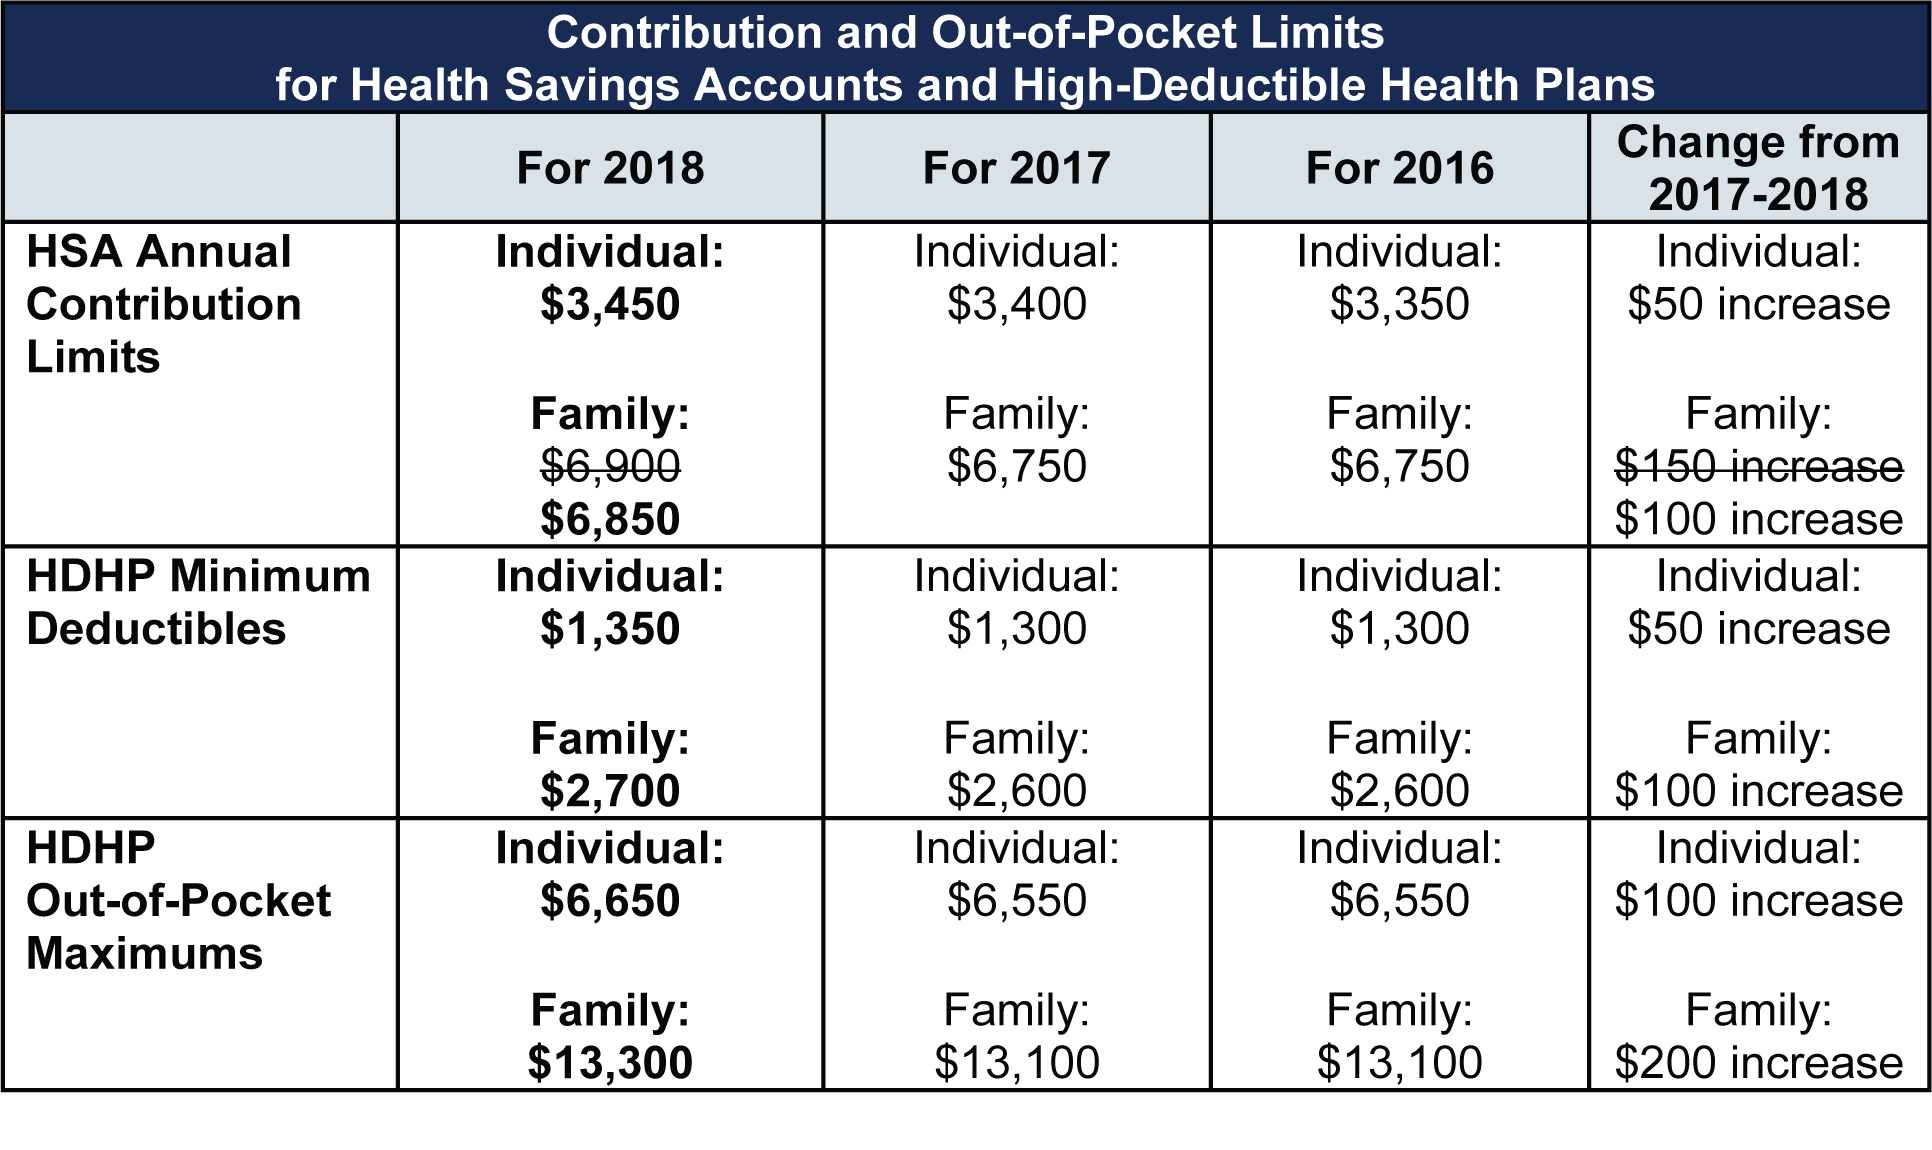 Contribution Limits Adjusted by IRS